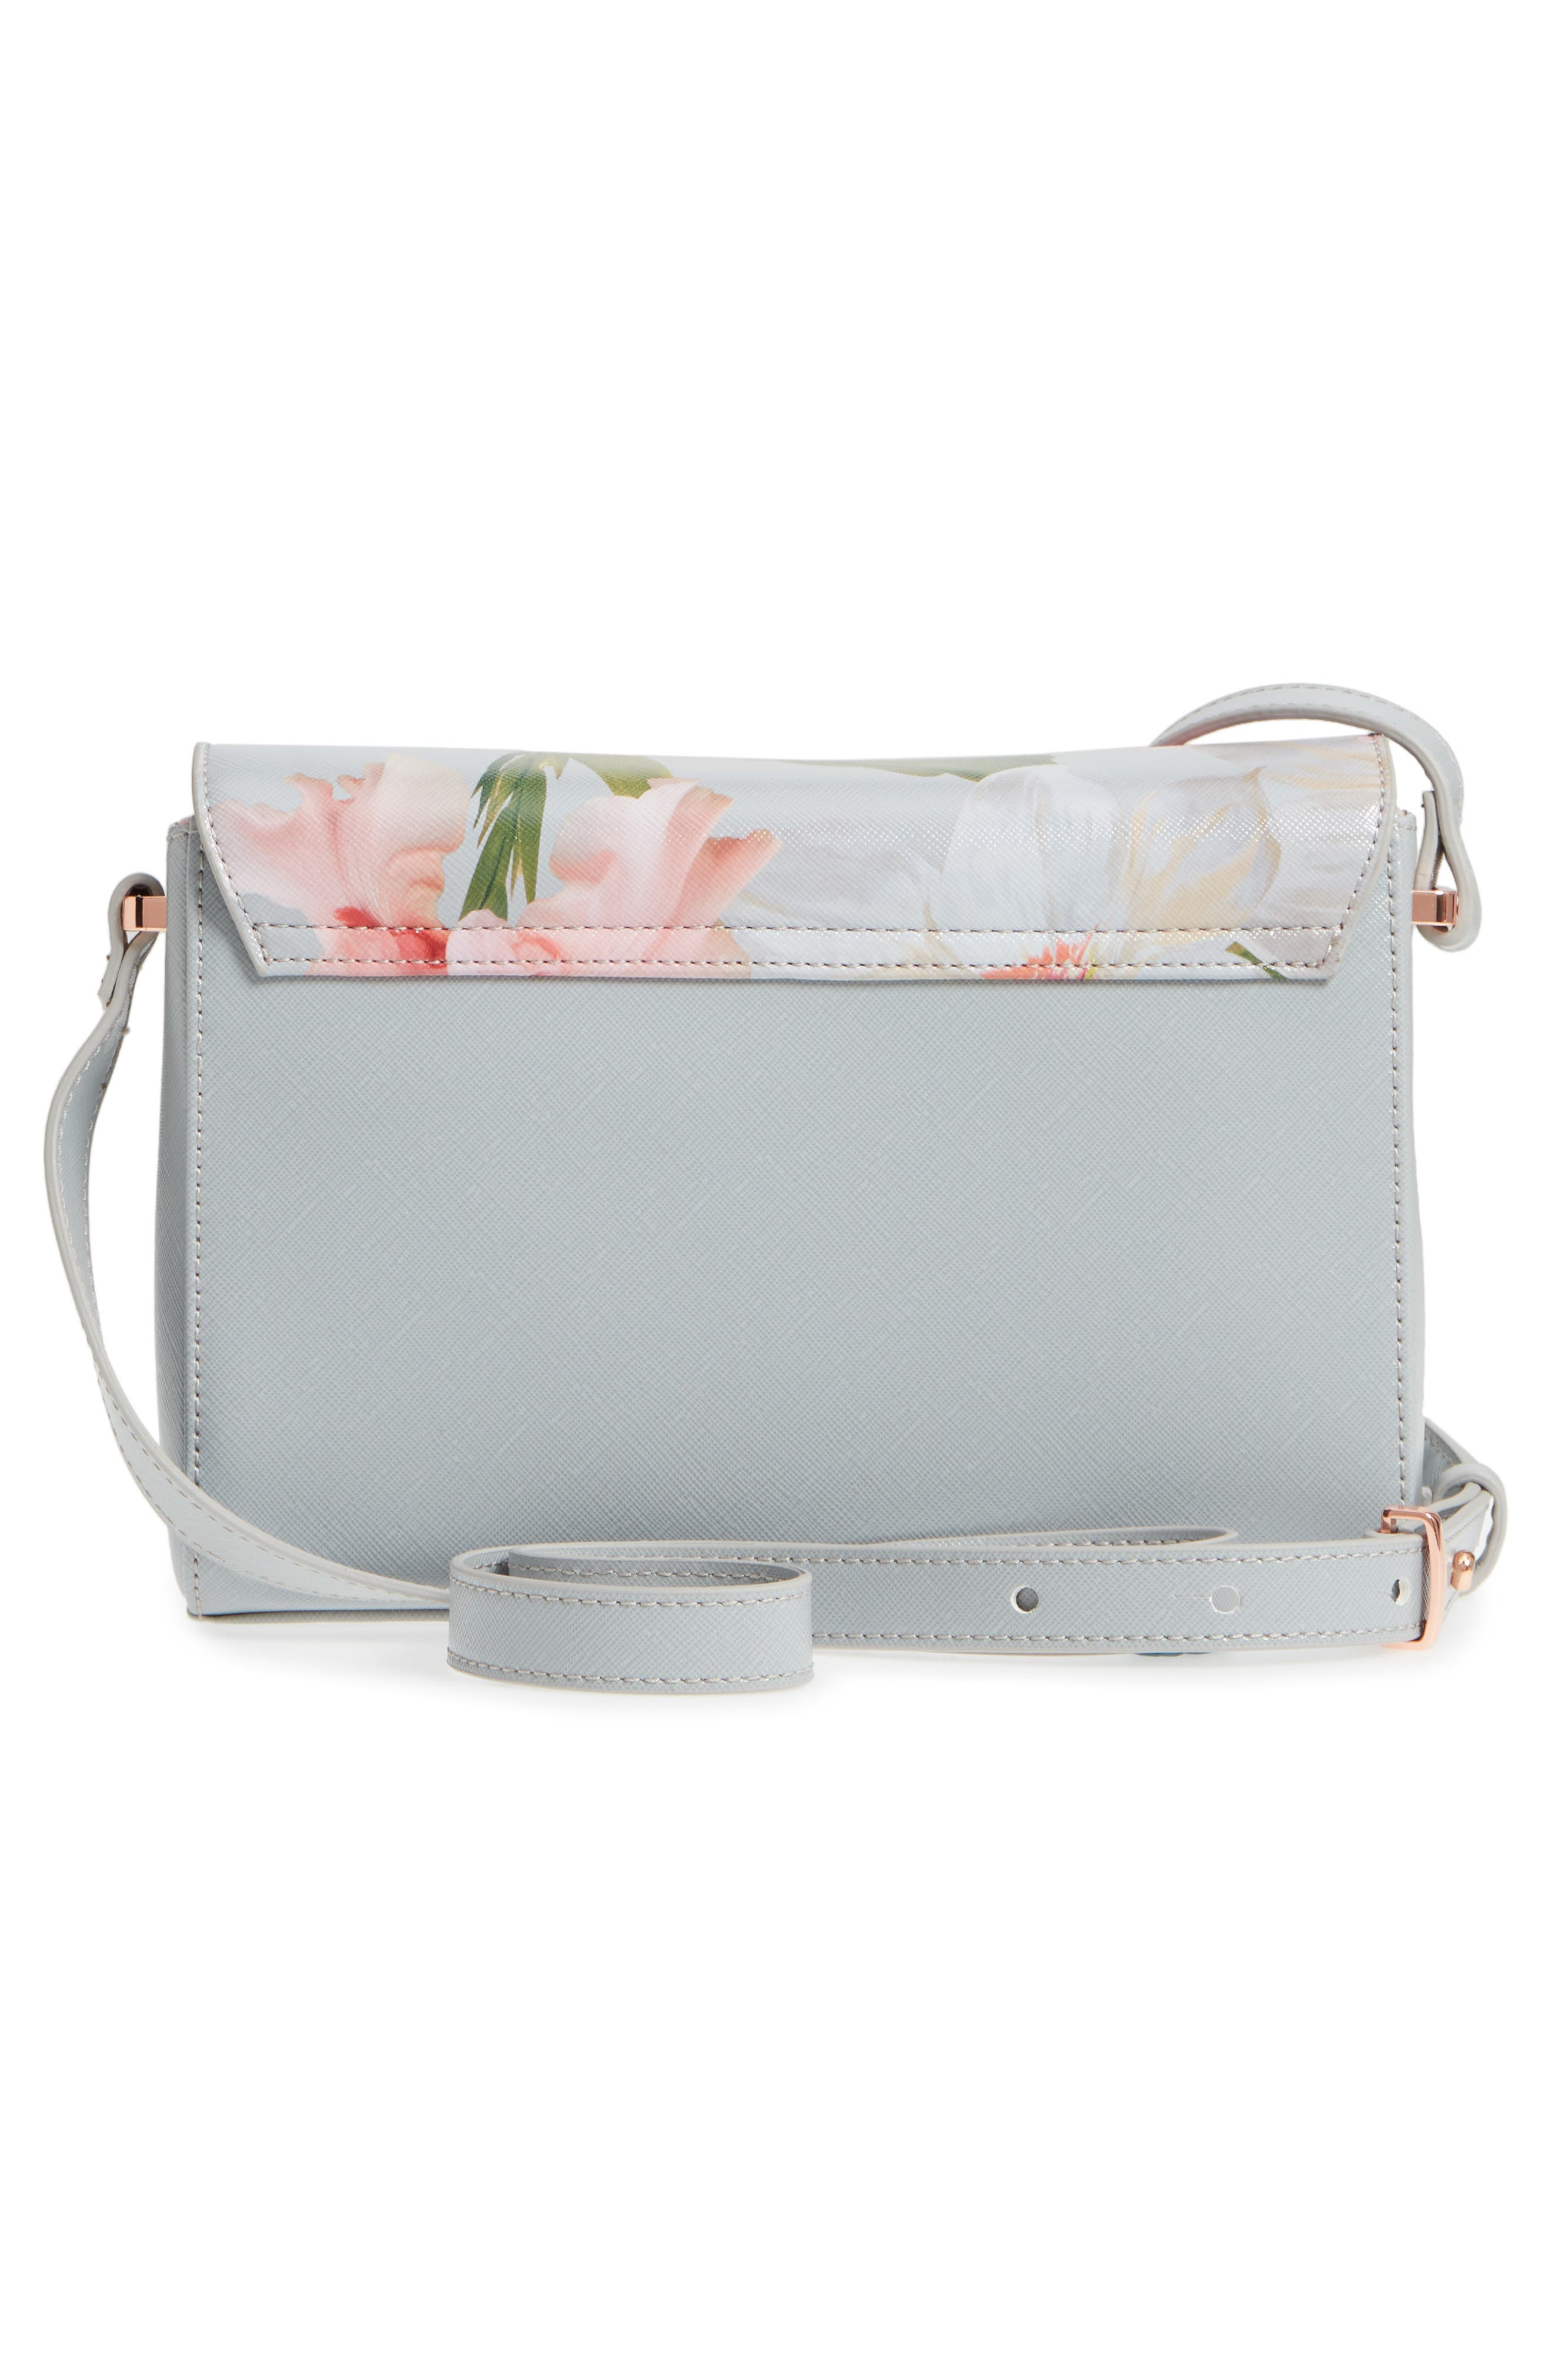 Prim Chatsworth Bloom Faux Leather Crossbody Bag,                             Alternate thumbnail 3, color,                             020